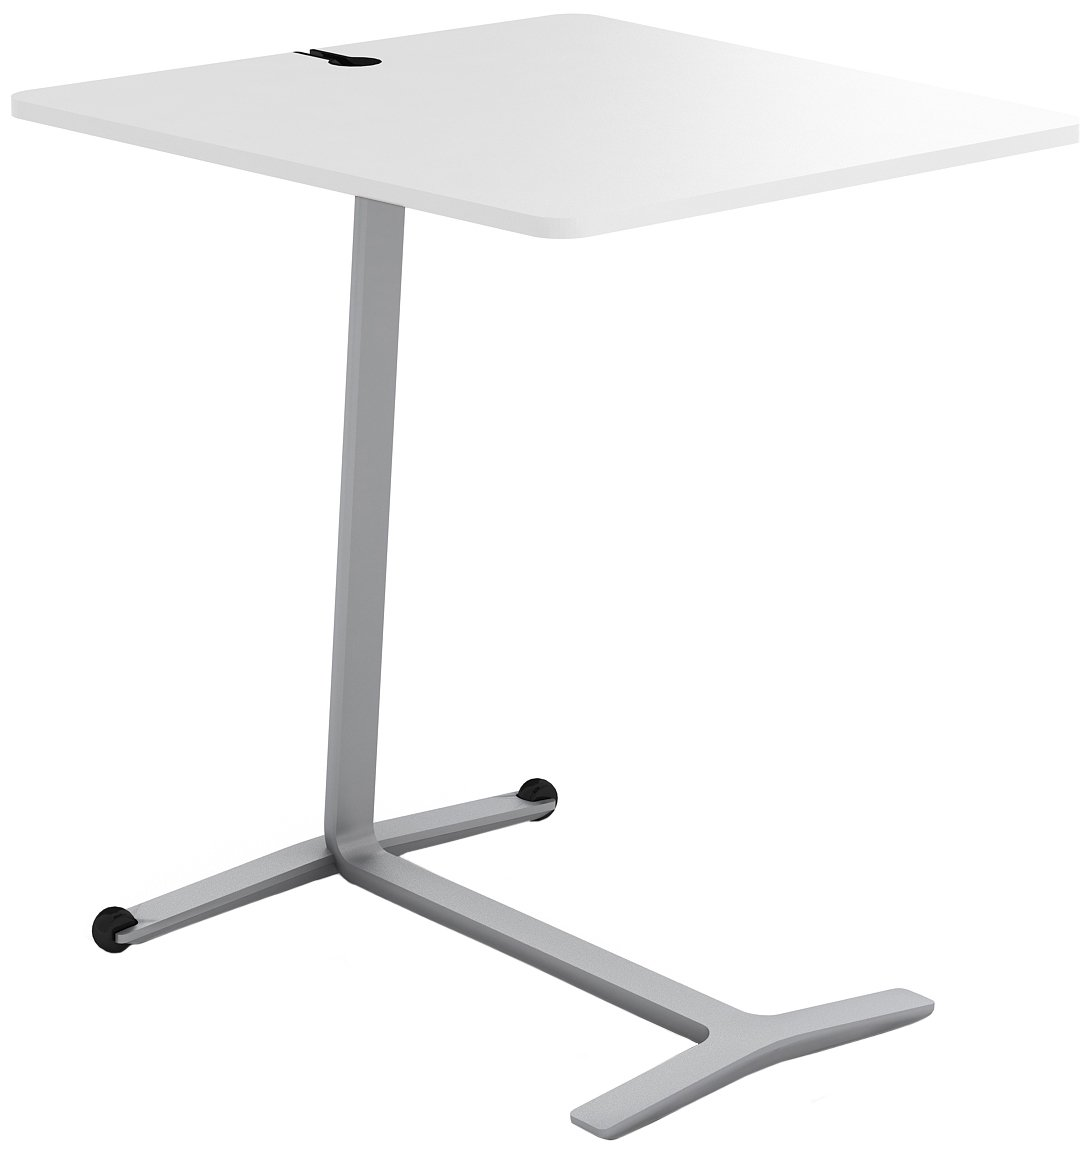 Steelcase Campfire Skate Table with Arctic White Finish Midnight Metallic CAMPFIRE SKATETABLE-428-89